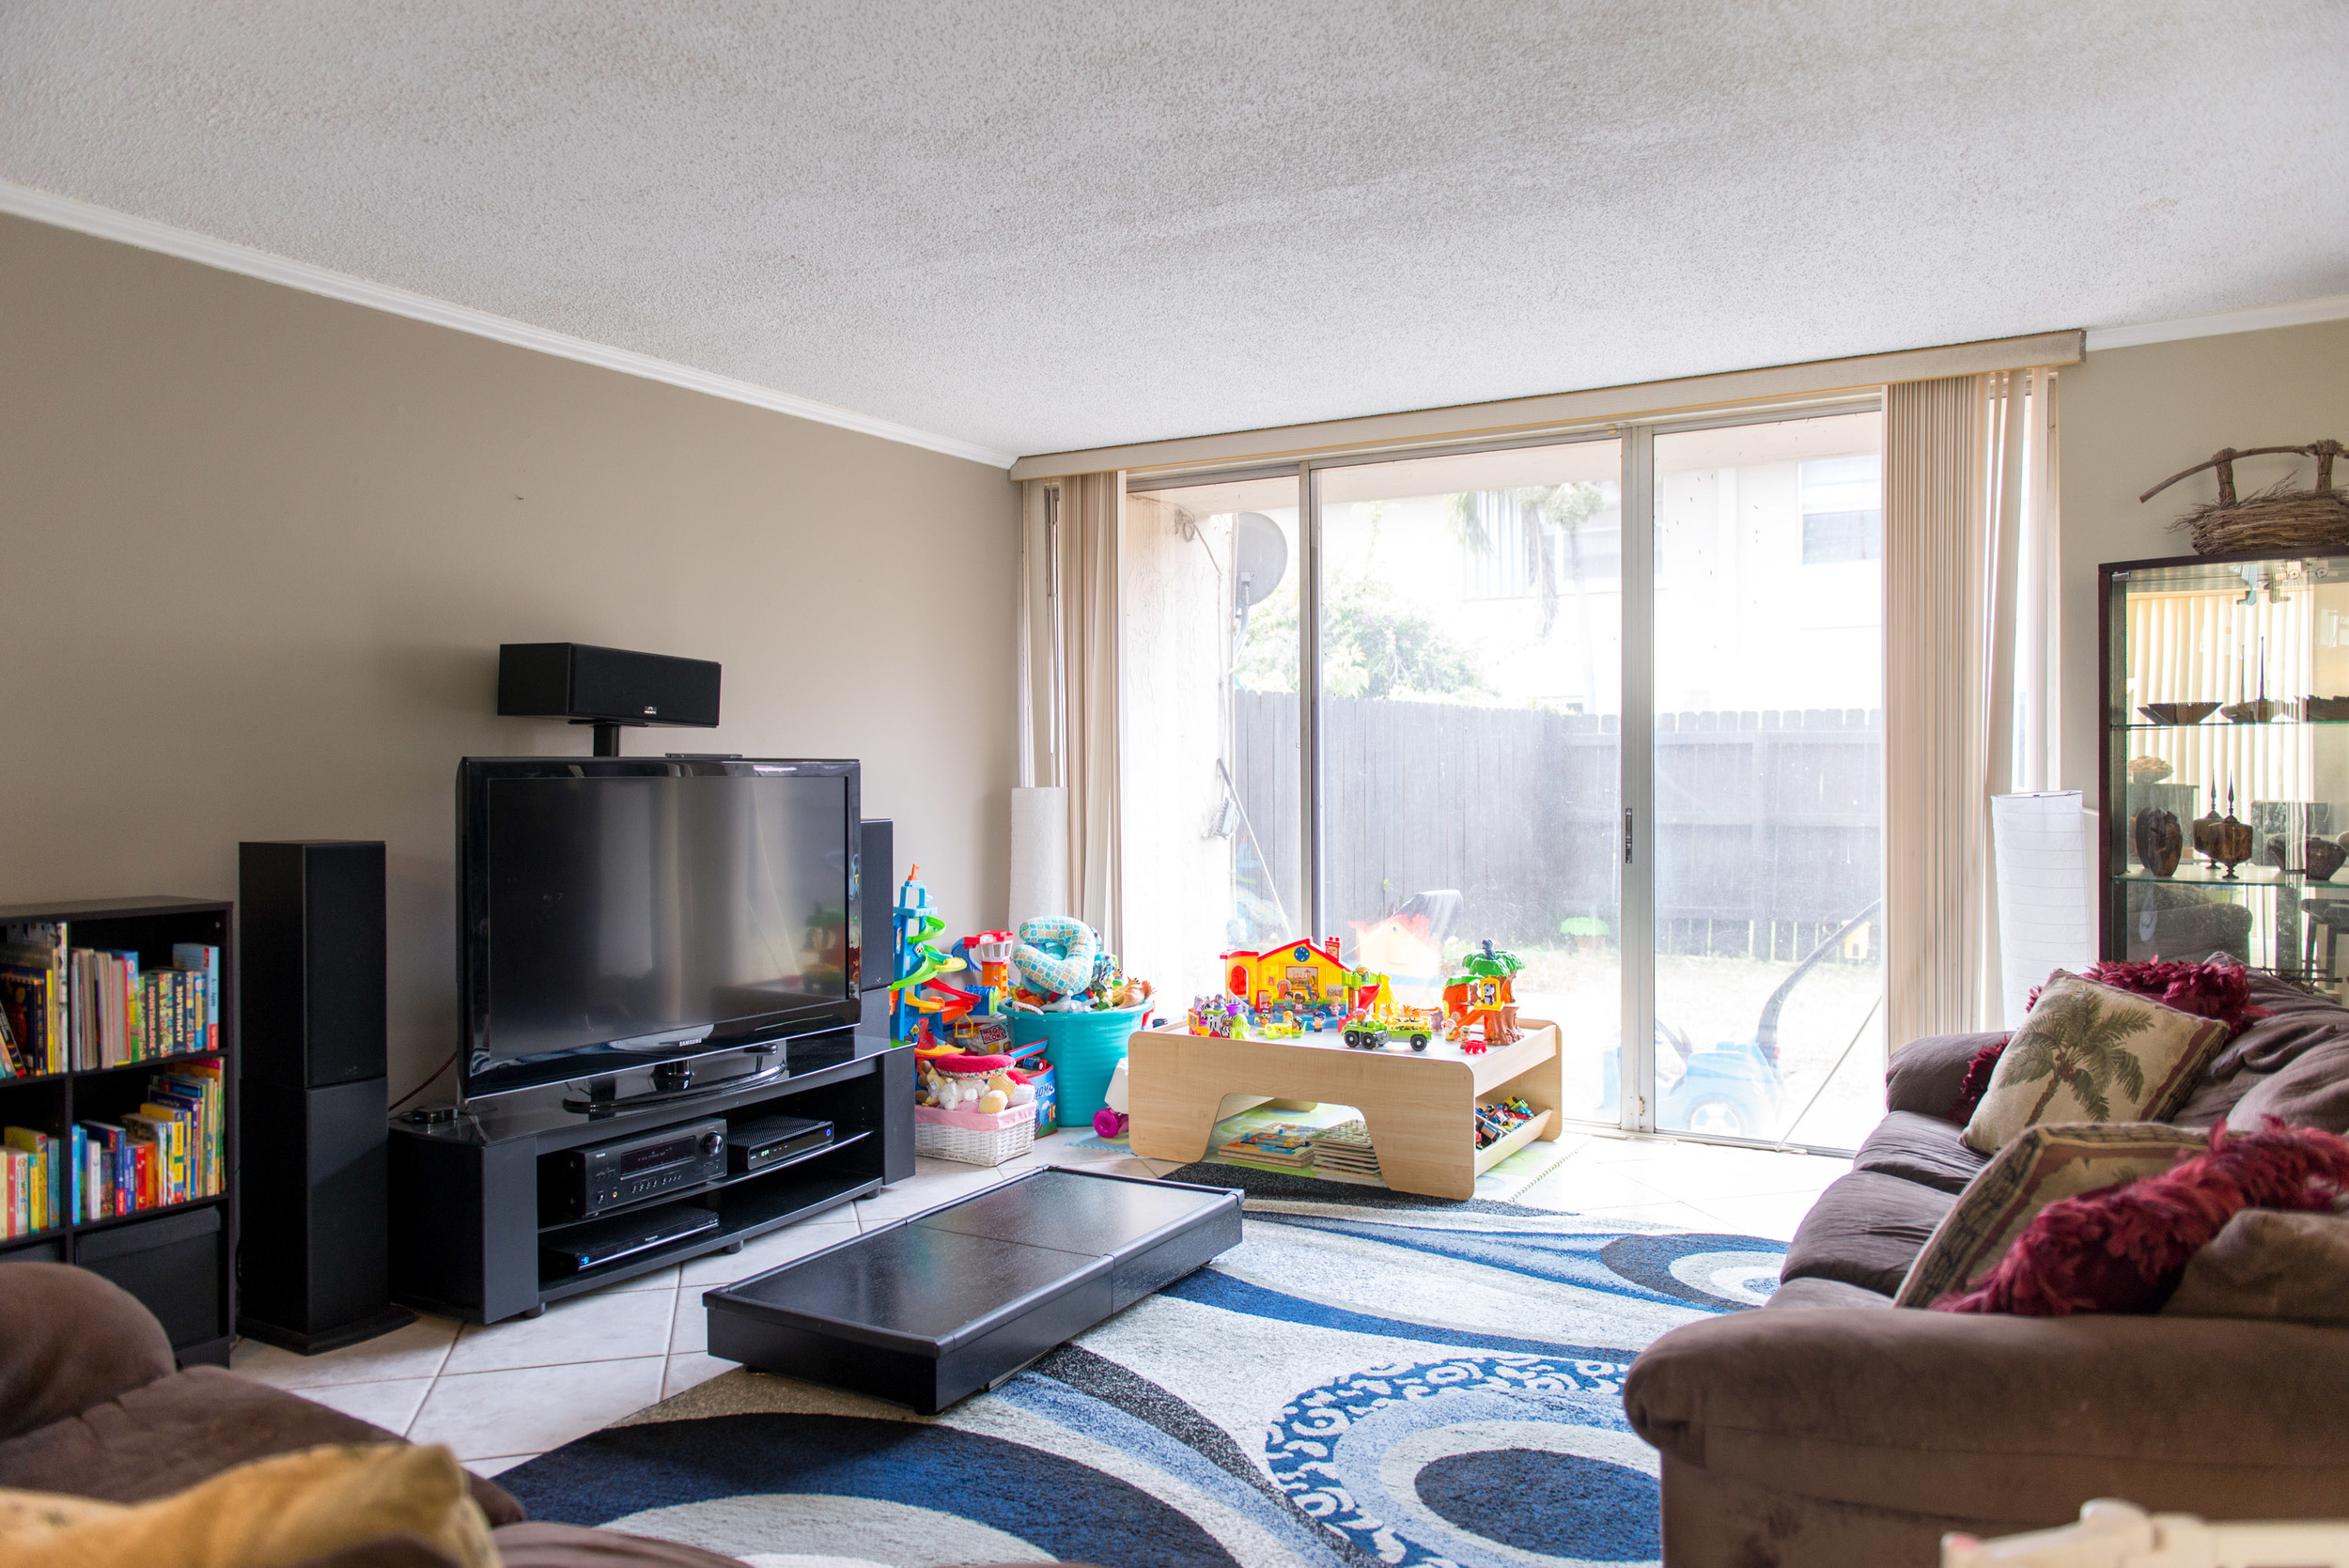 This open and bright floorplan offers a wonderful large living room with high ceilings!